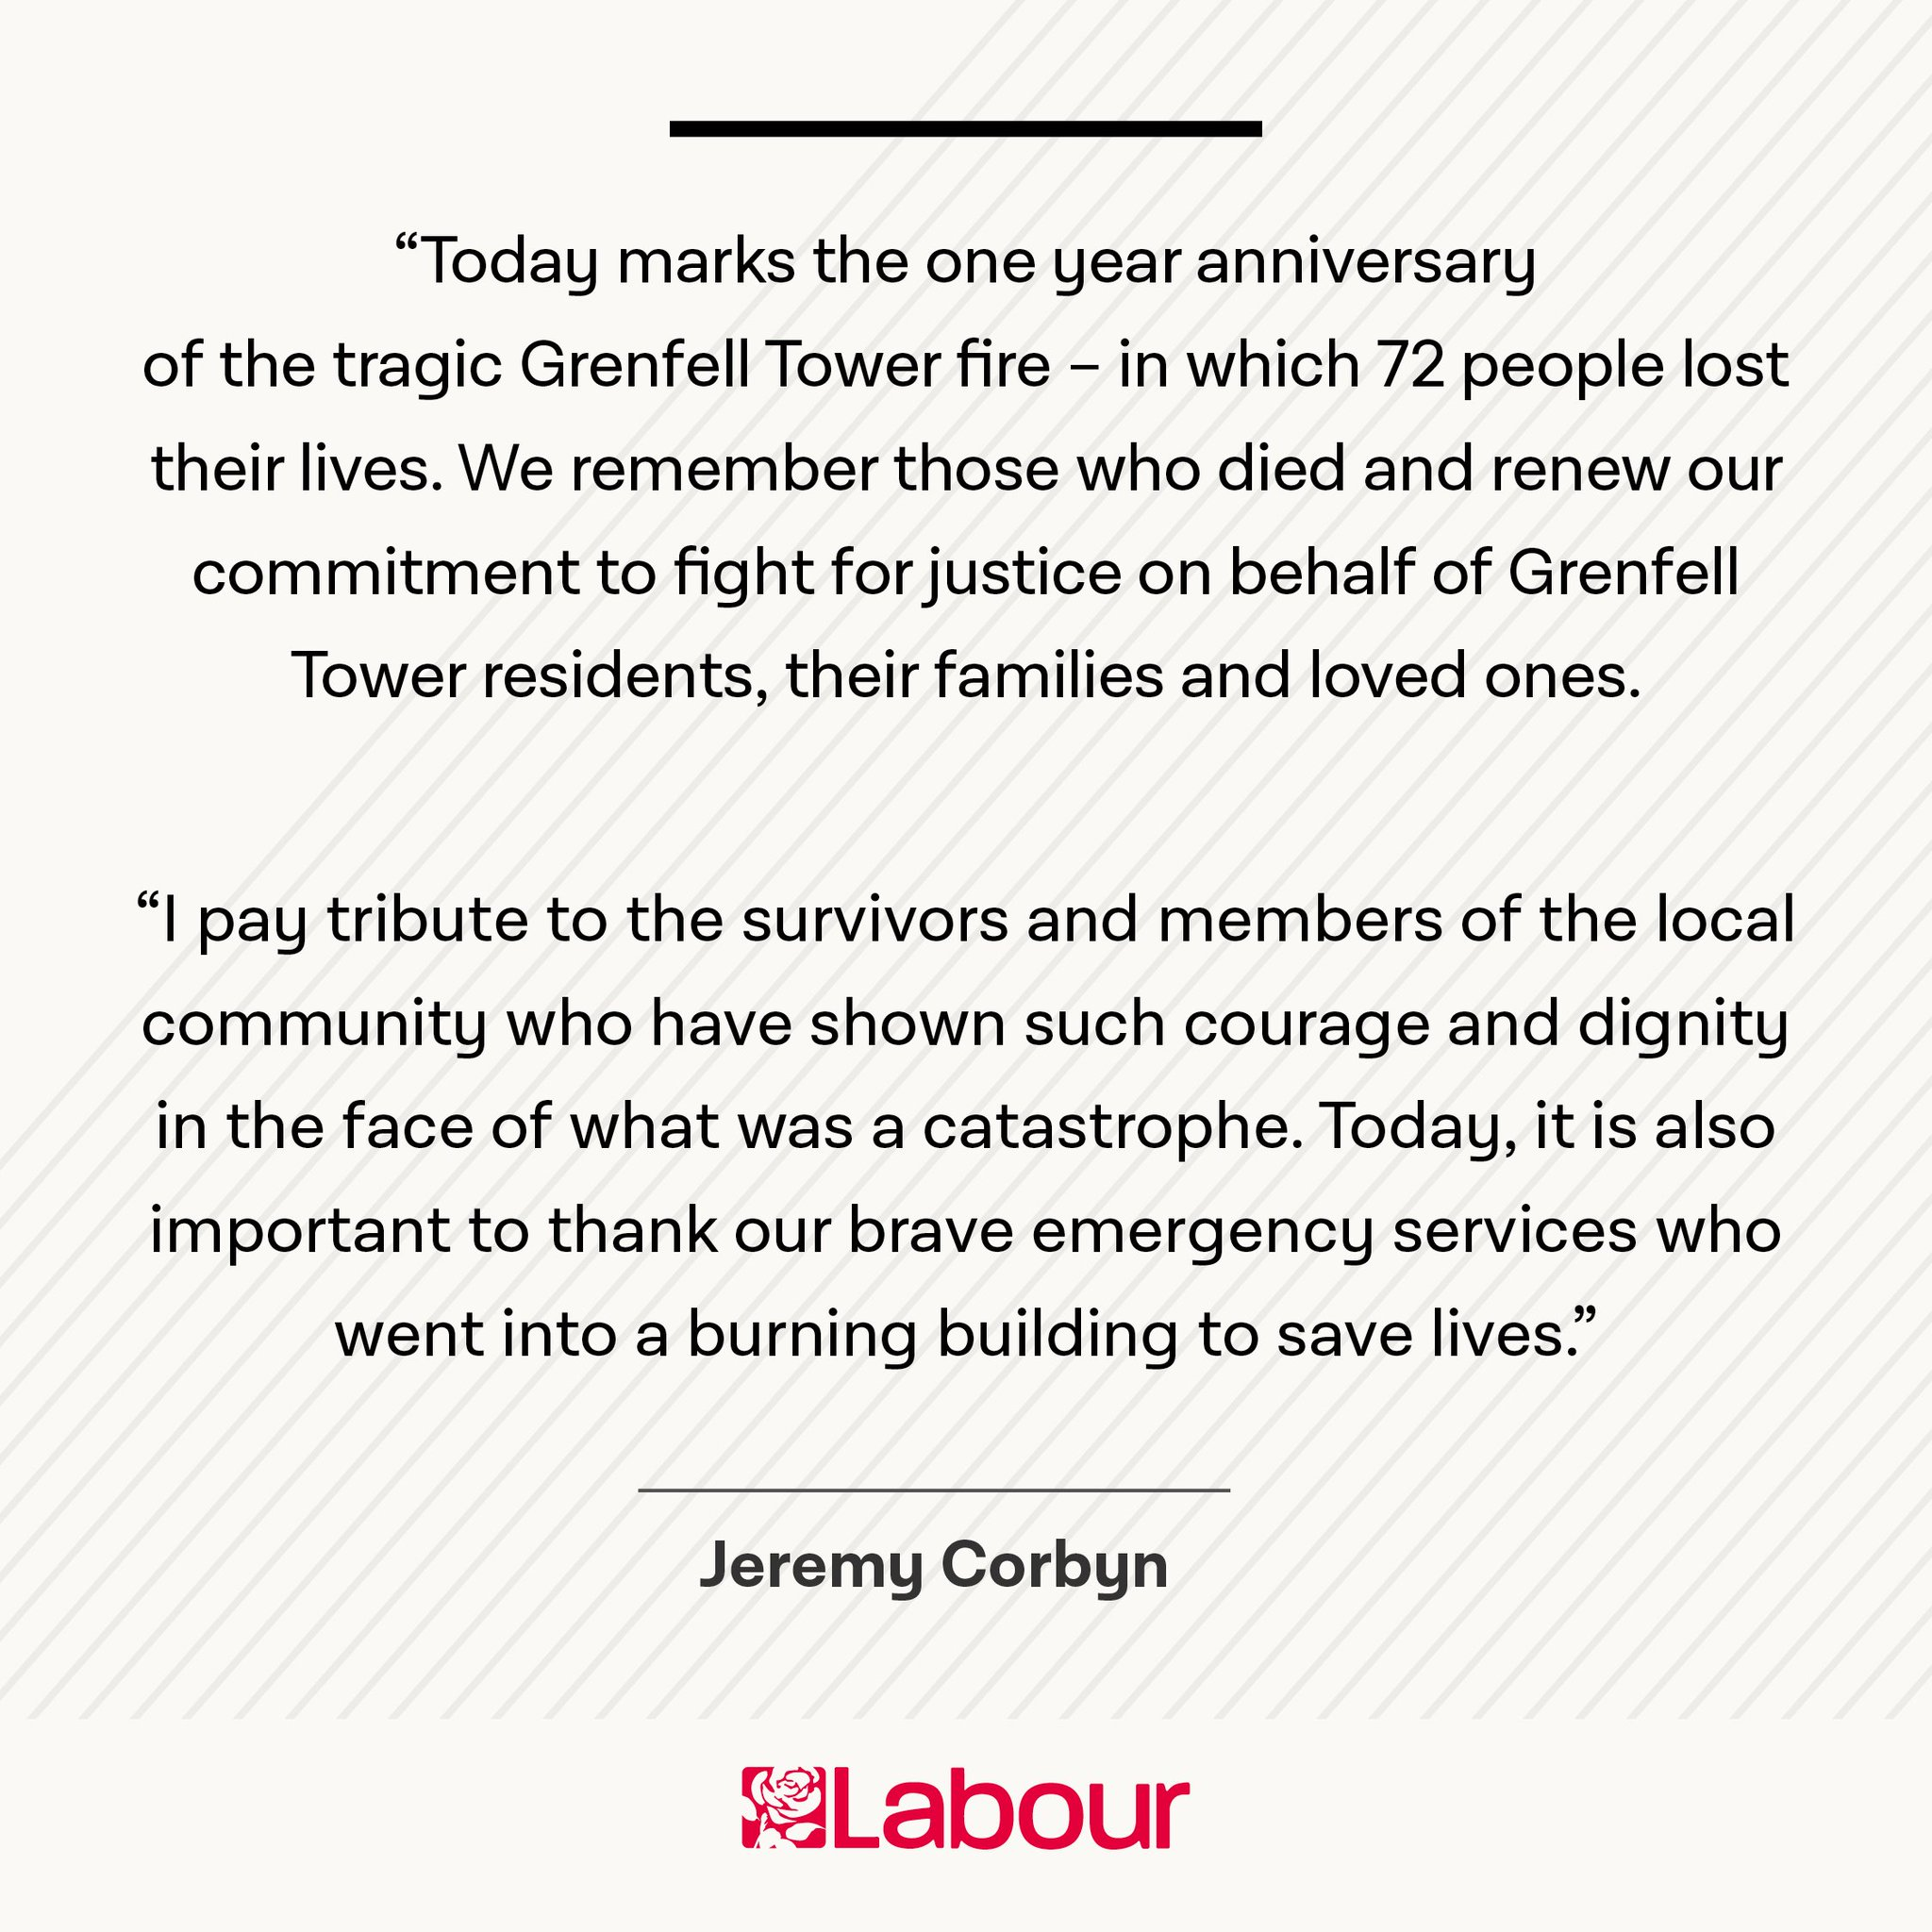 Today we remember the 72 people who lost their lives in the Grenfell tower fire. Here's @jeremycorbyn's statement. https://t.co/2SfhqkgAHB